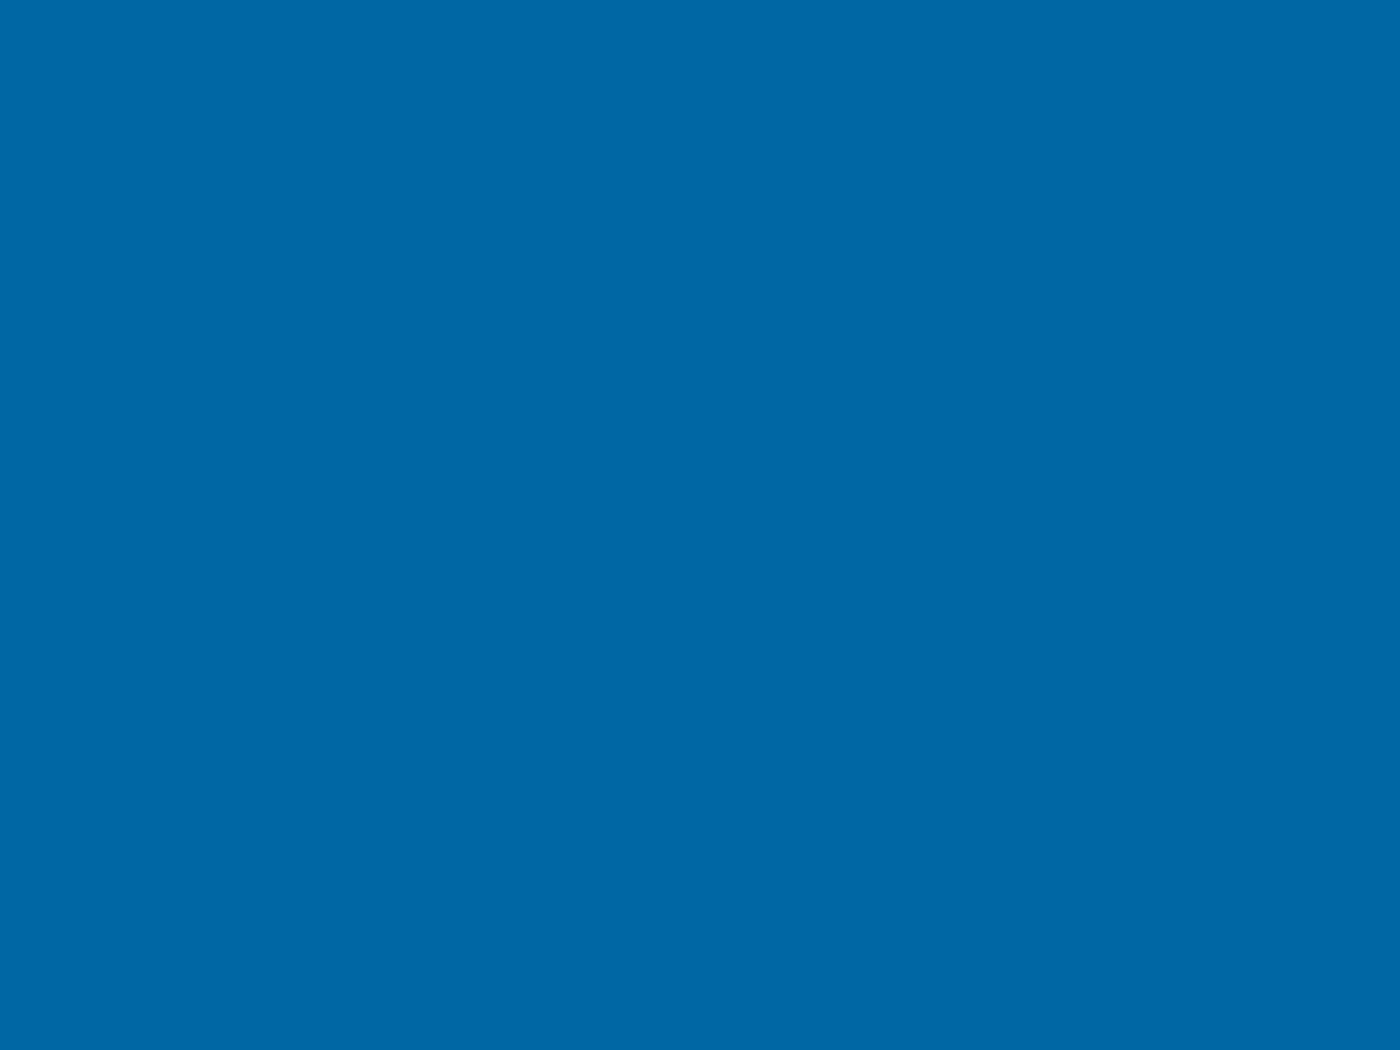 1400x1050 Medium Persian Blue Solid Color Background